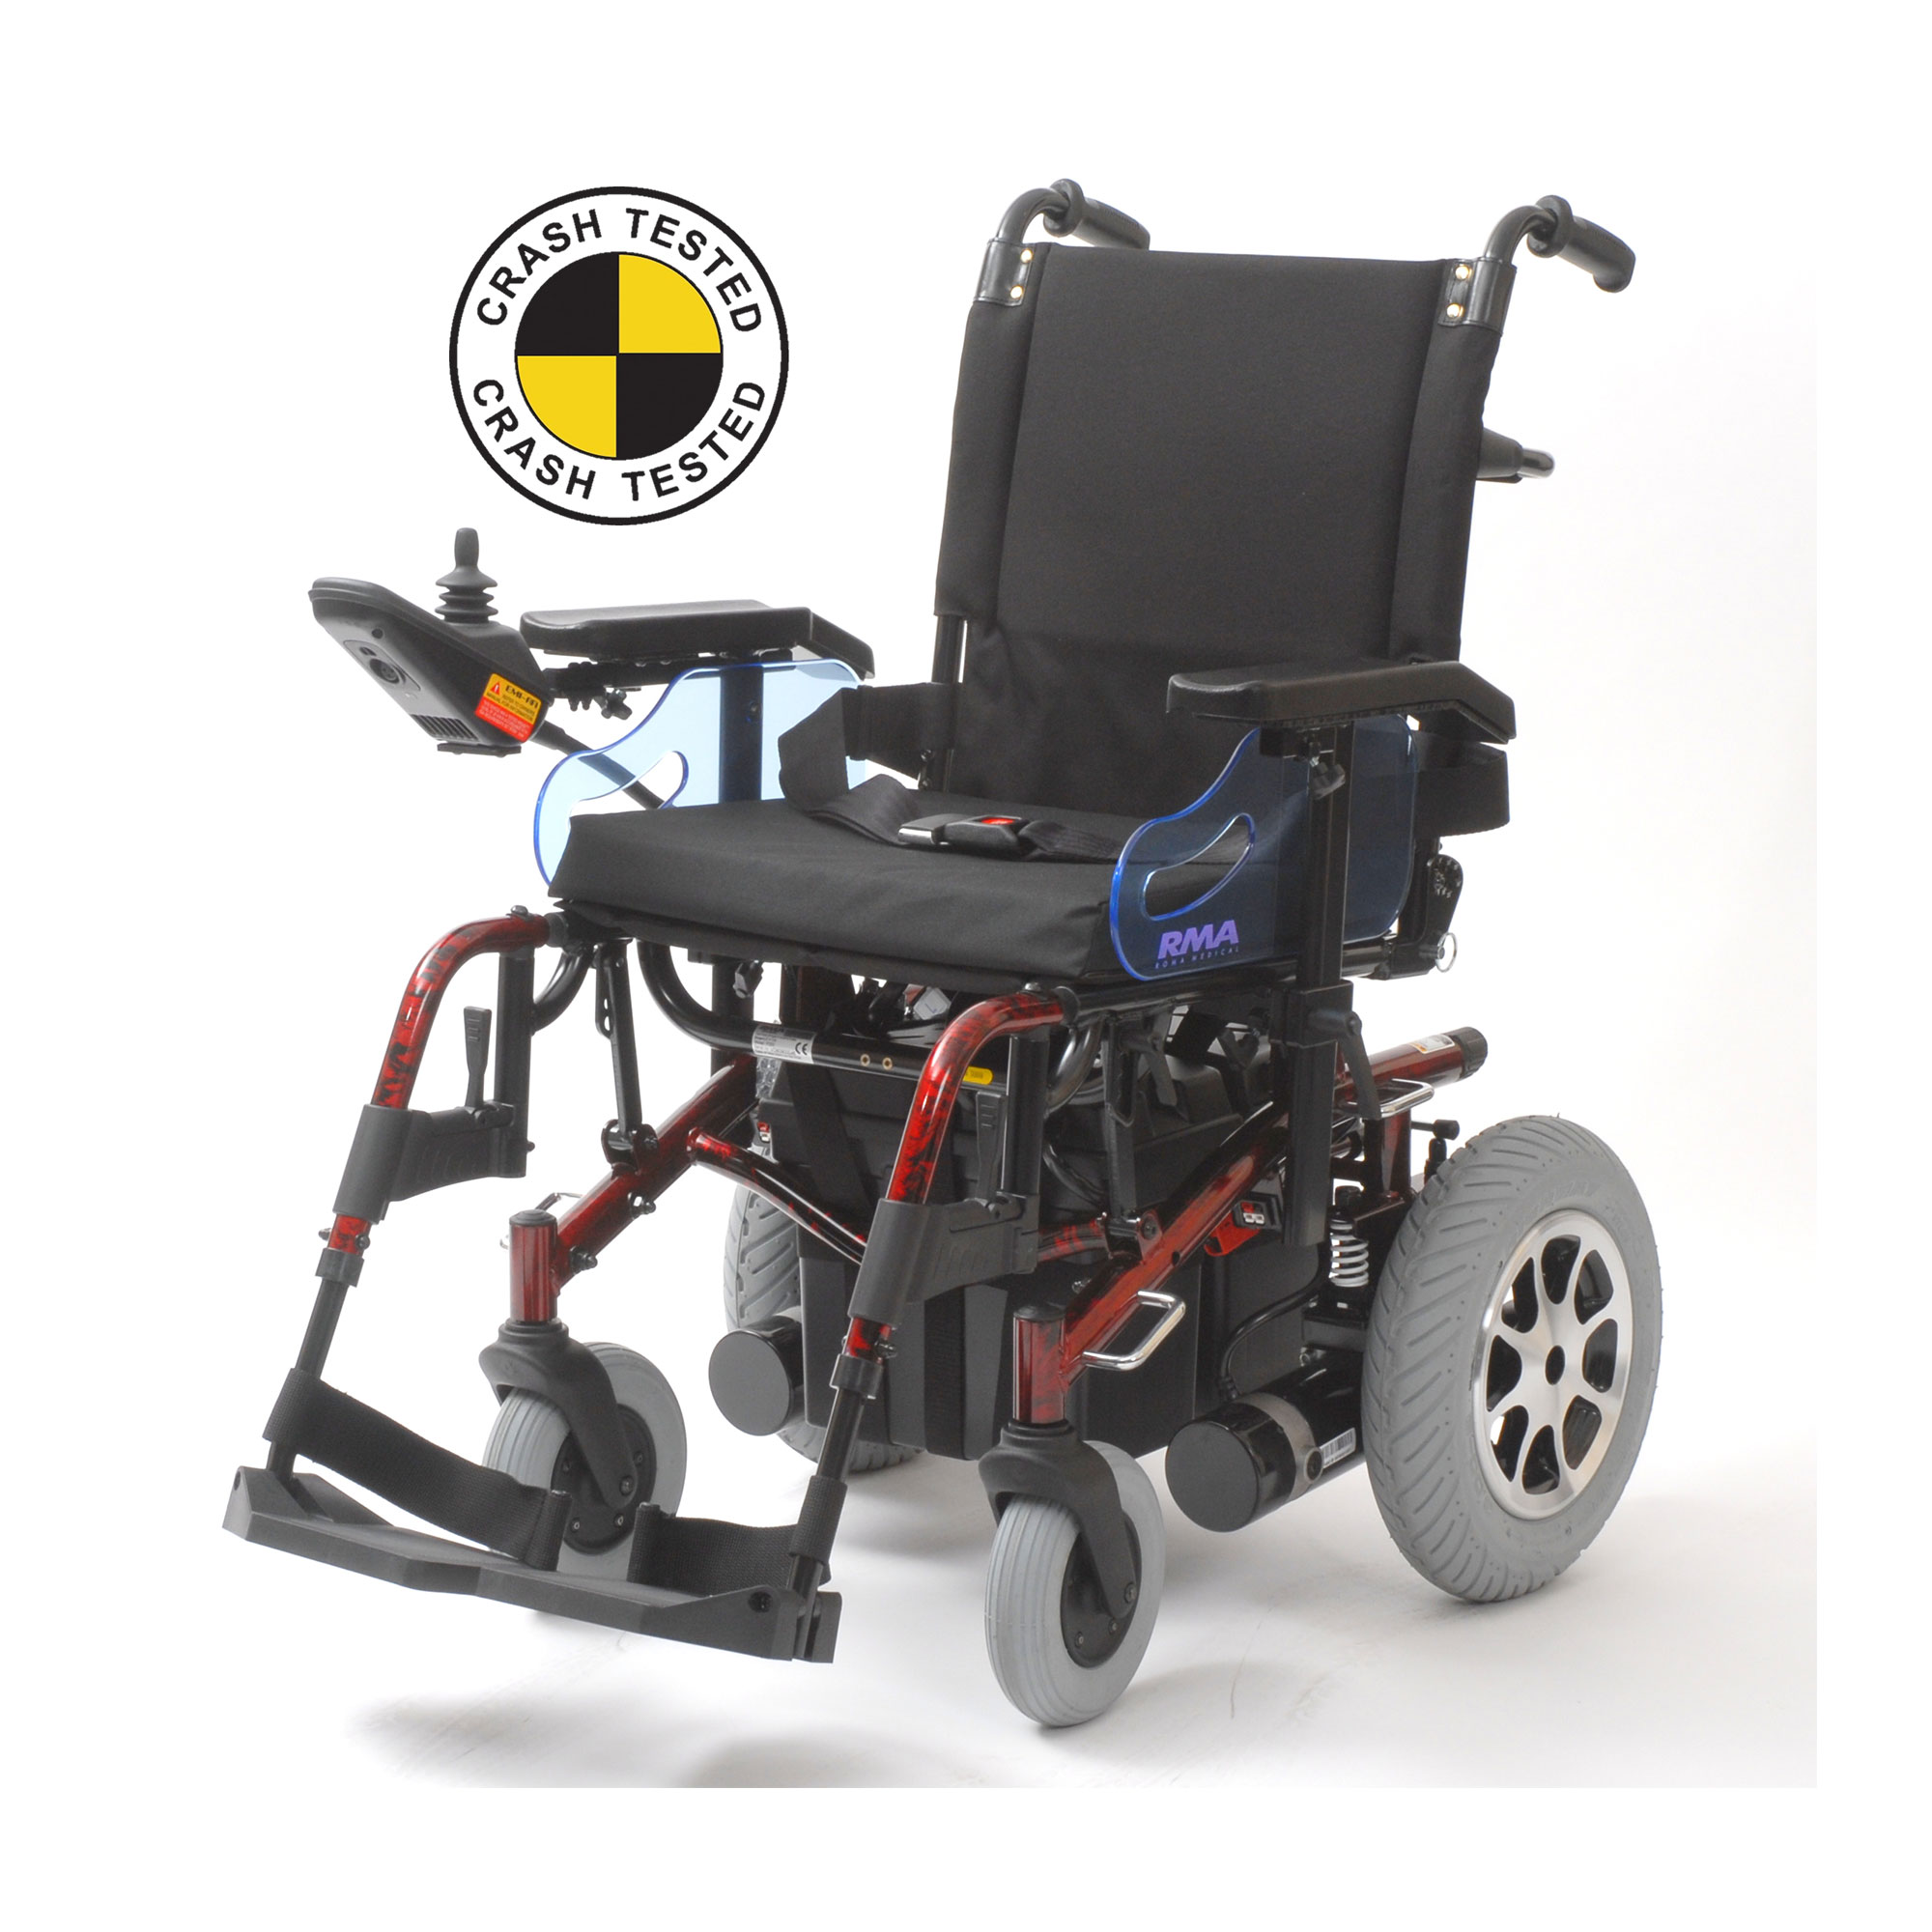 Roma Marbella Electric Wheelchair Delvered Next Day For Free UK